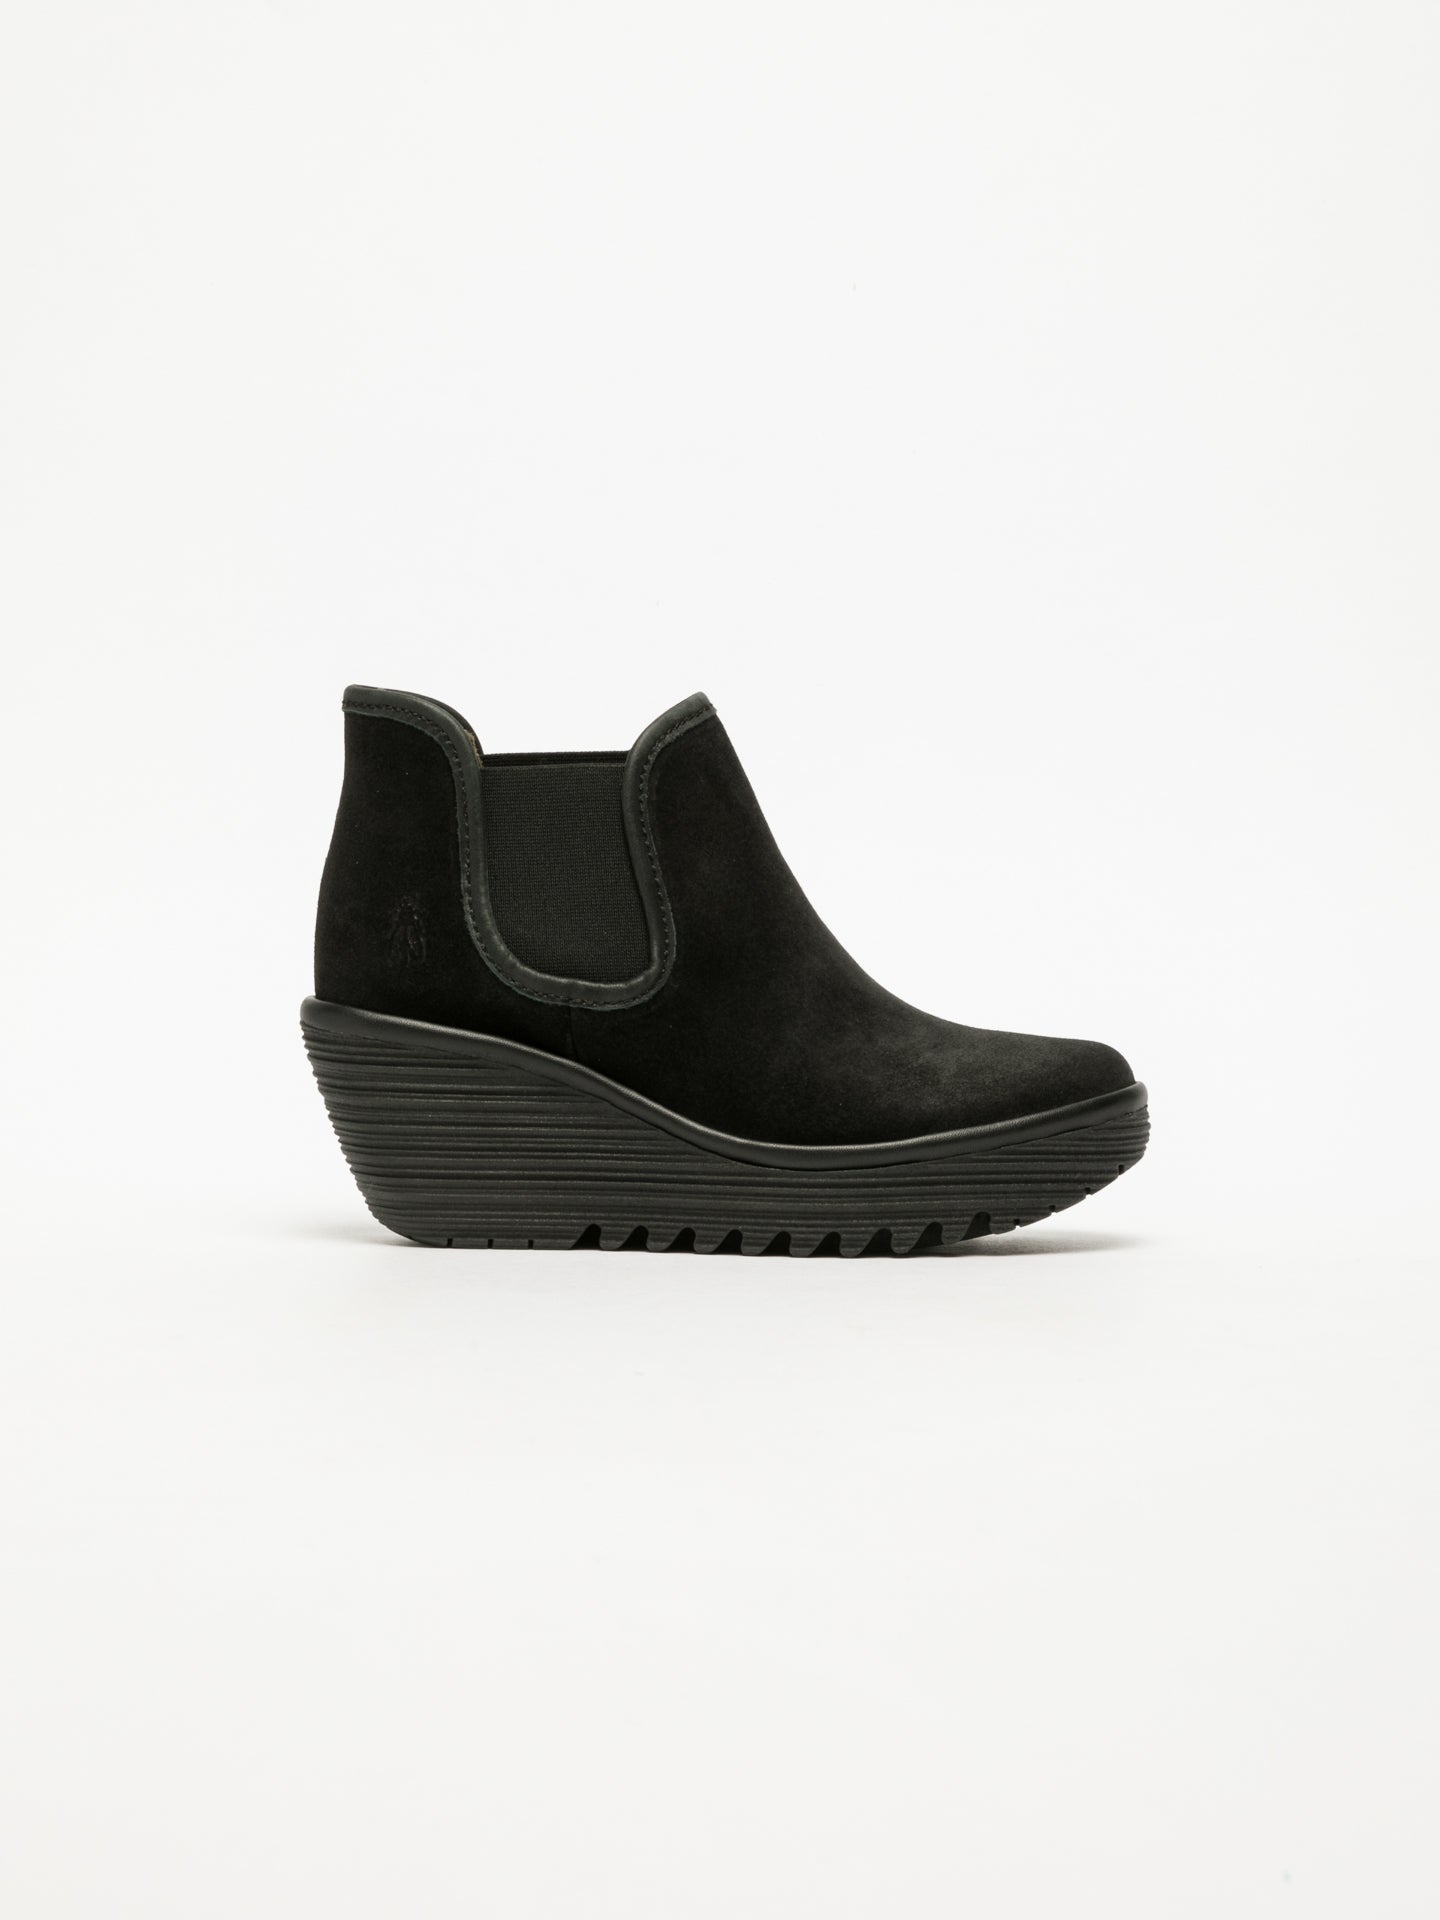 Fly London Black Wedge Ankle Boots